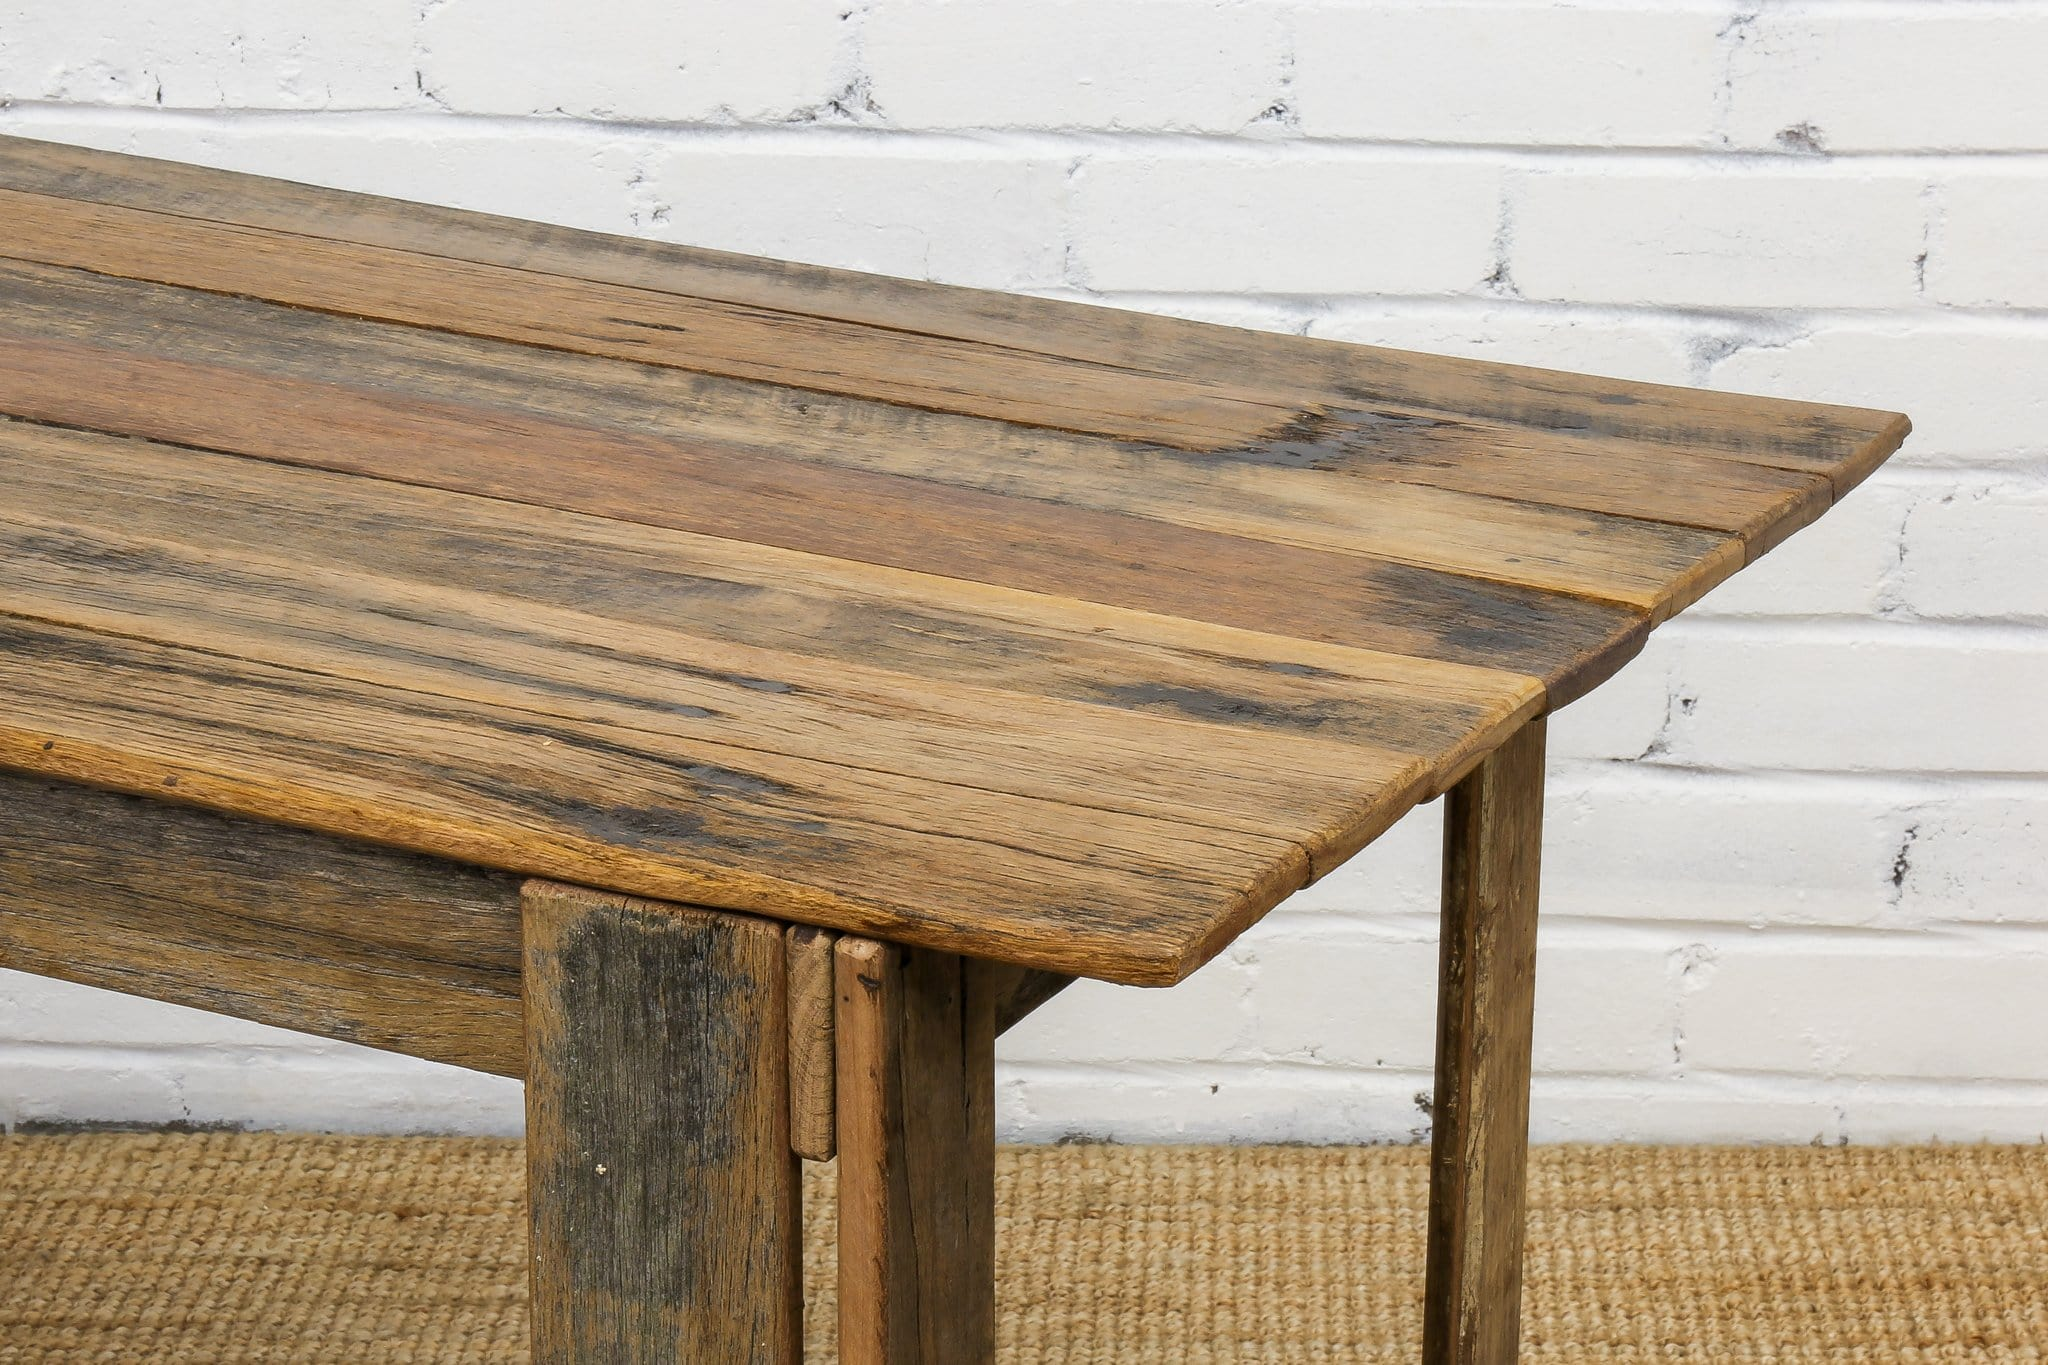 Recycled Timber Flat Pack Desk